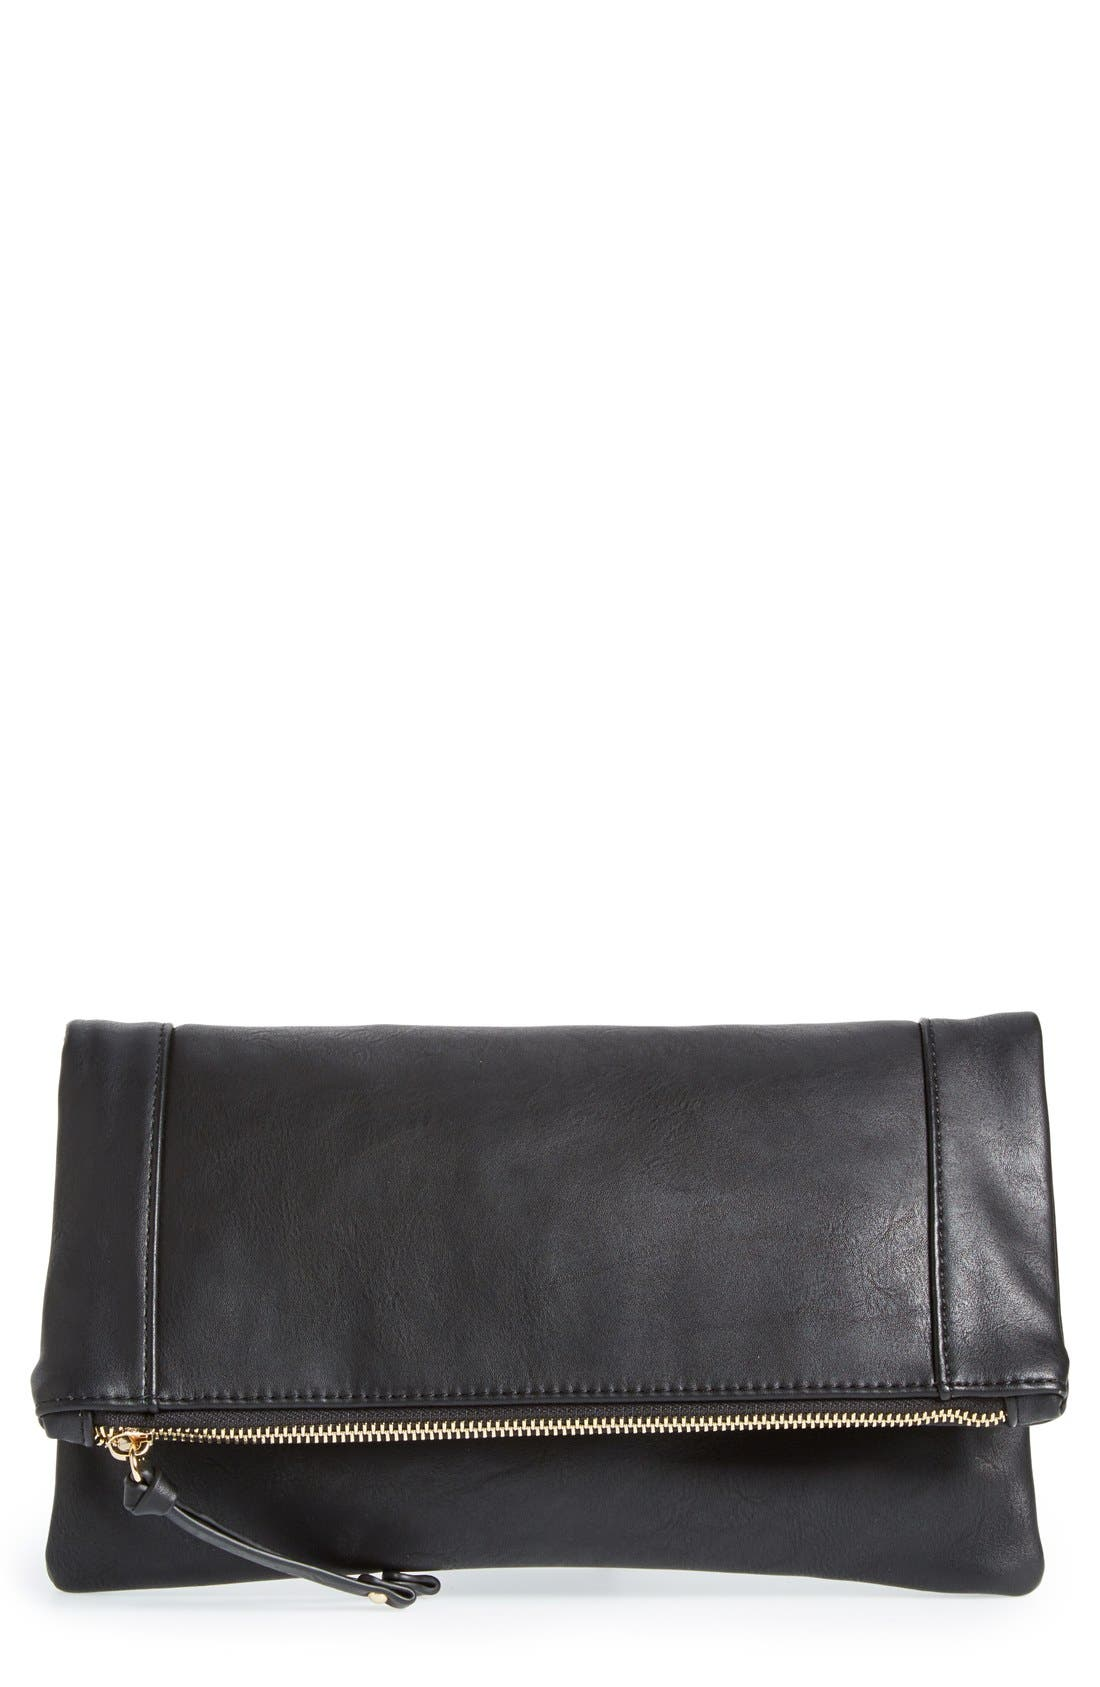 Alternate Image 1 Selected - Sole Society 'Marlena' Faux Leather Foldover Clutch